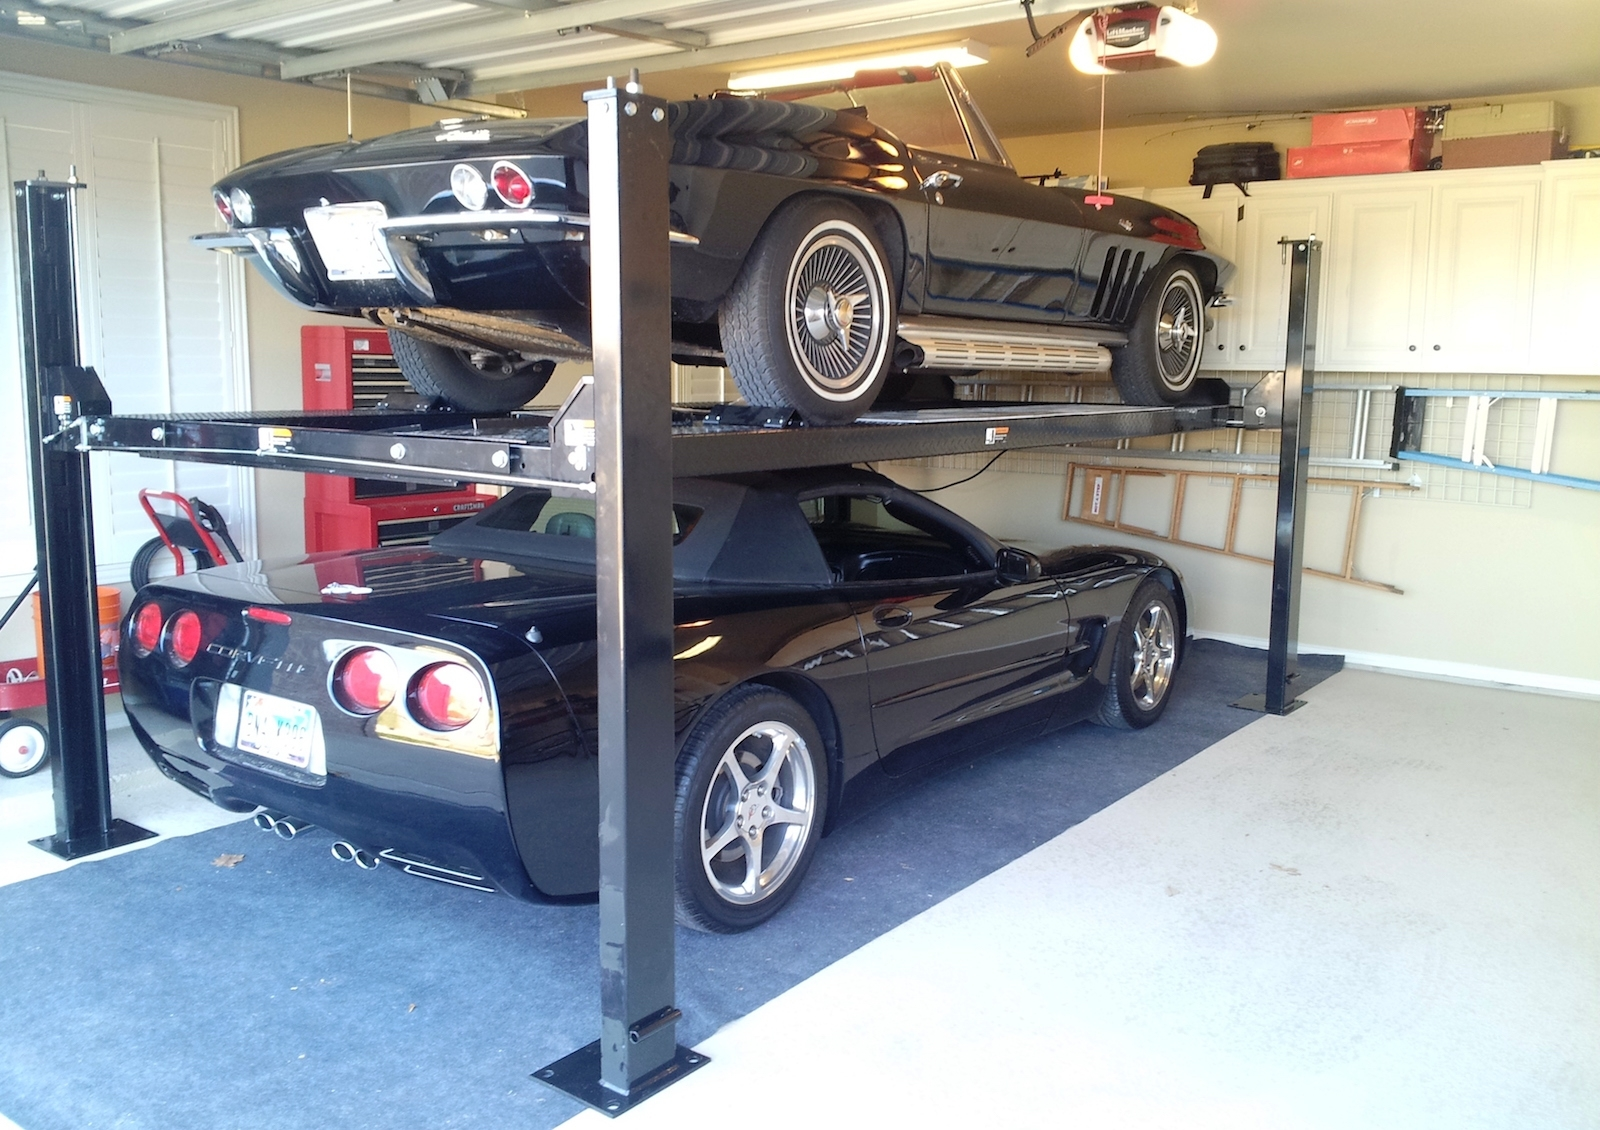 Car Lift To Basement Garage Hydraulic Car Lift Home Garage Schmidt Gallery Design